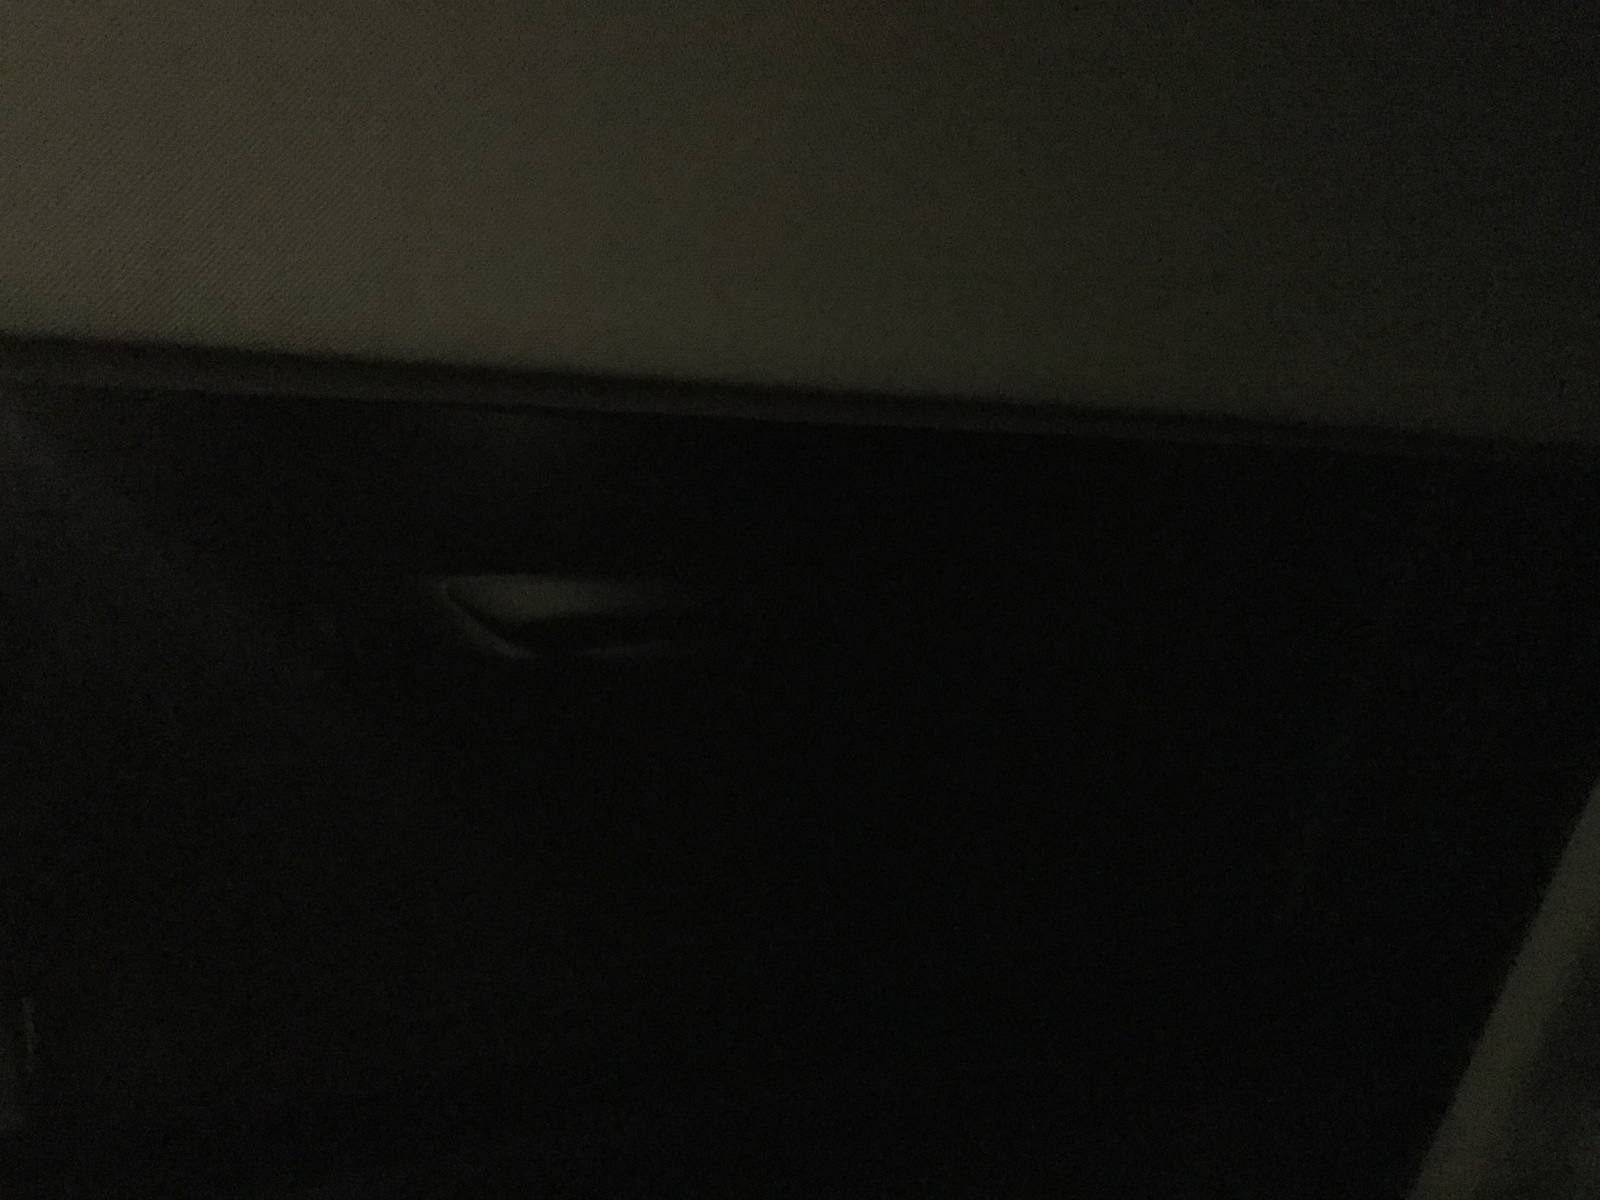 Bmw X5 Questions My 2006 Sunshade Visor Wont Close Cargurus Fuse Box Moonroof Is But Sun Shade Stuck Open Please Help Me There A Im Hoping Its That I Tried Everything You Could Possibly Do